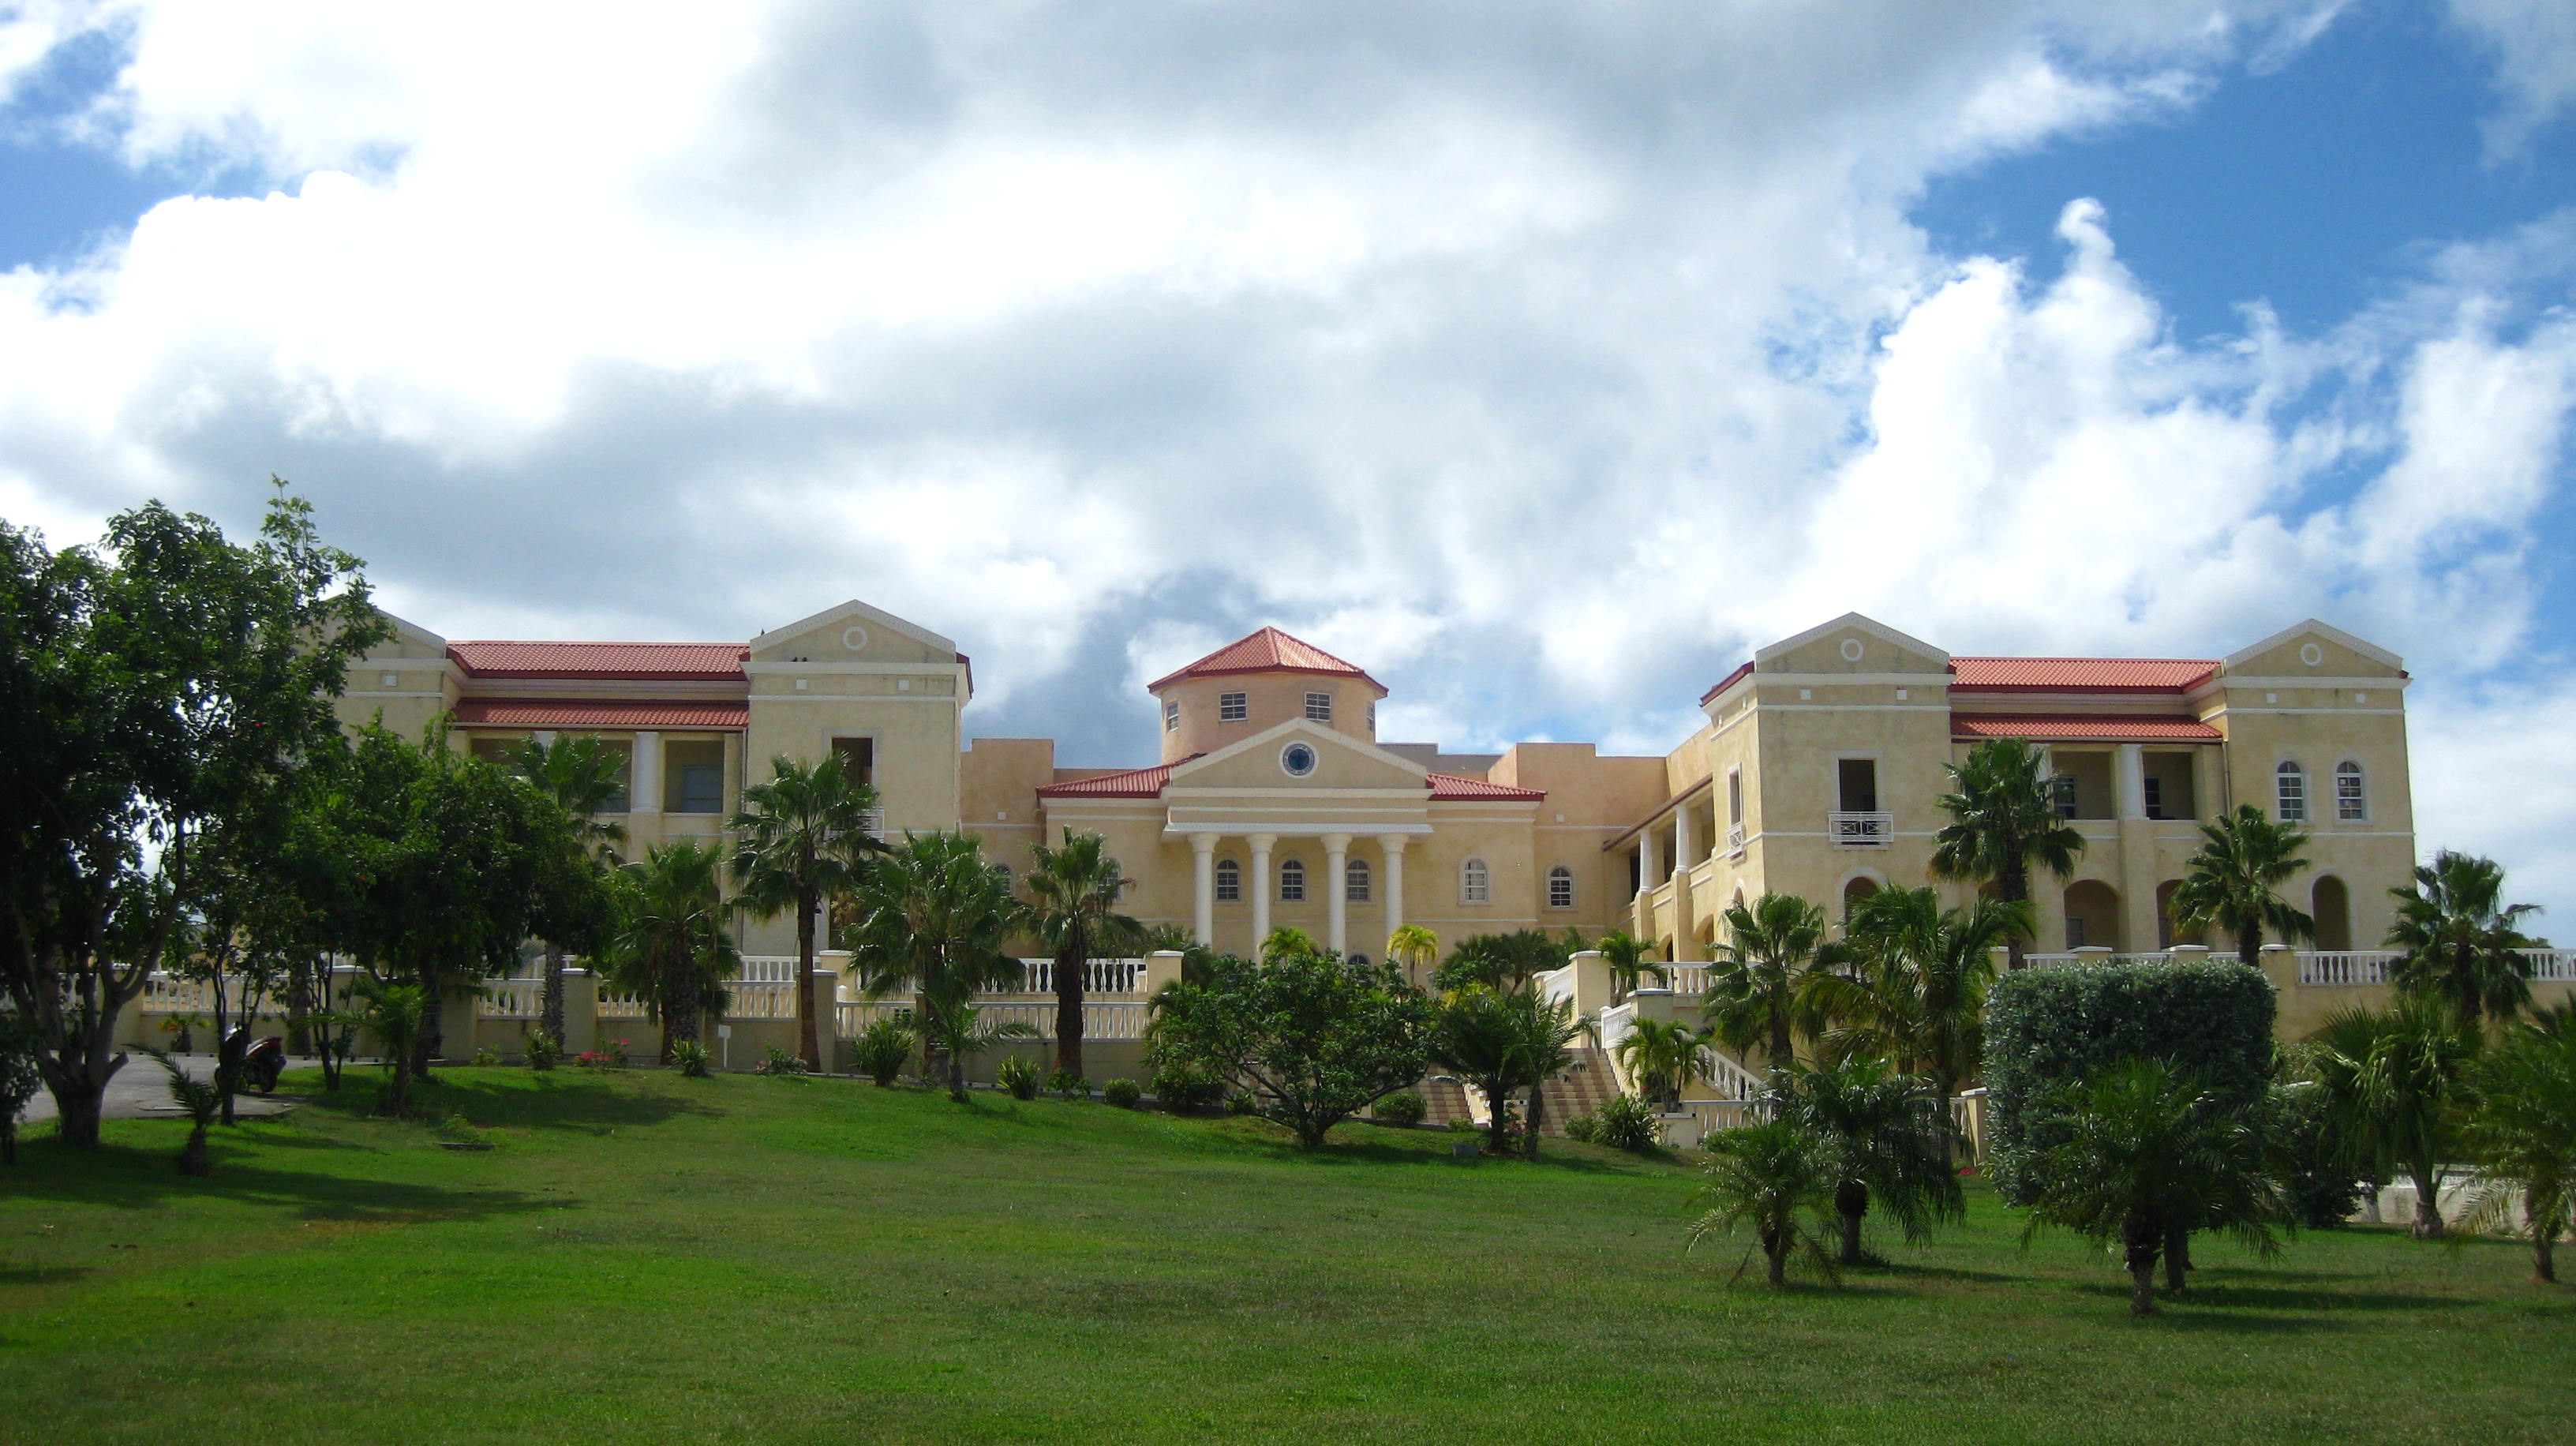 Ross University Medical School